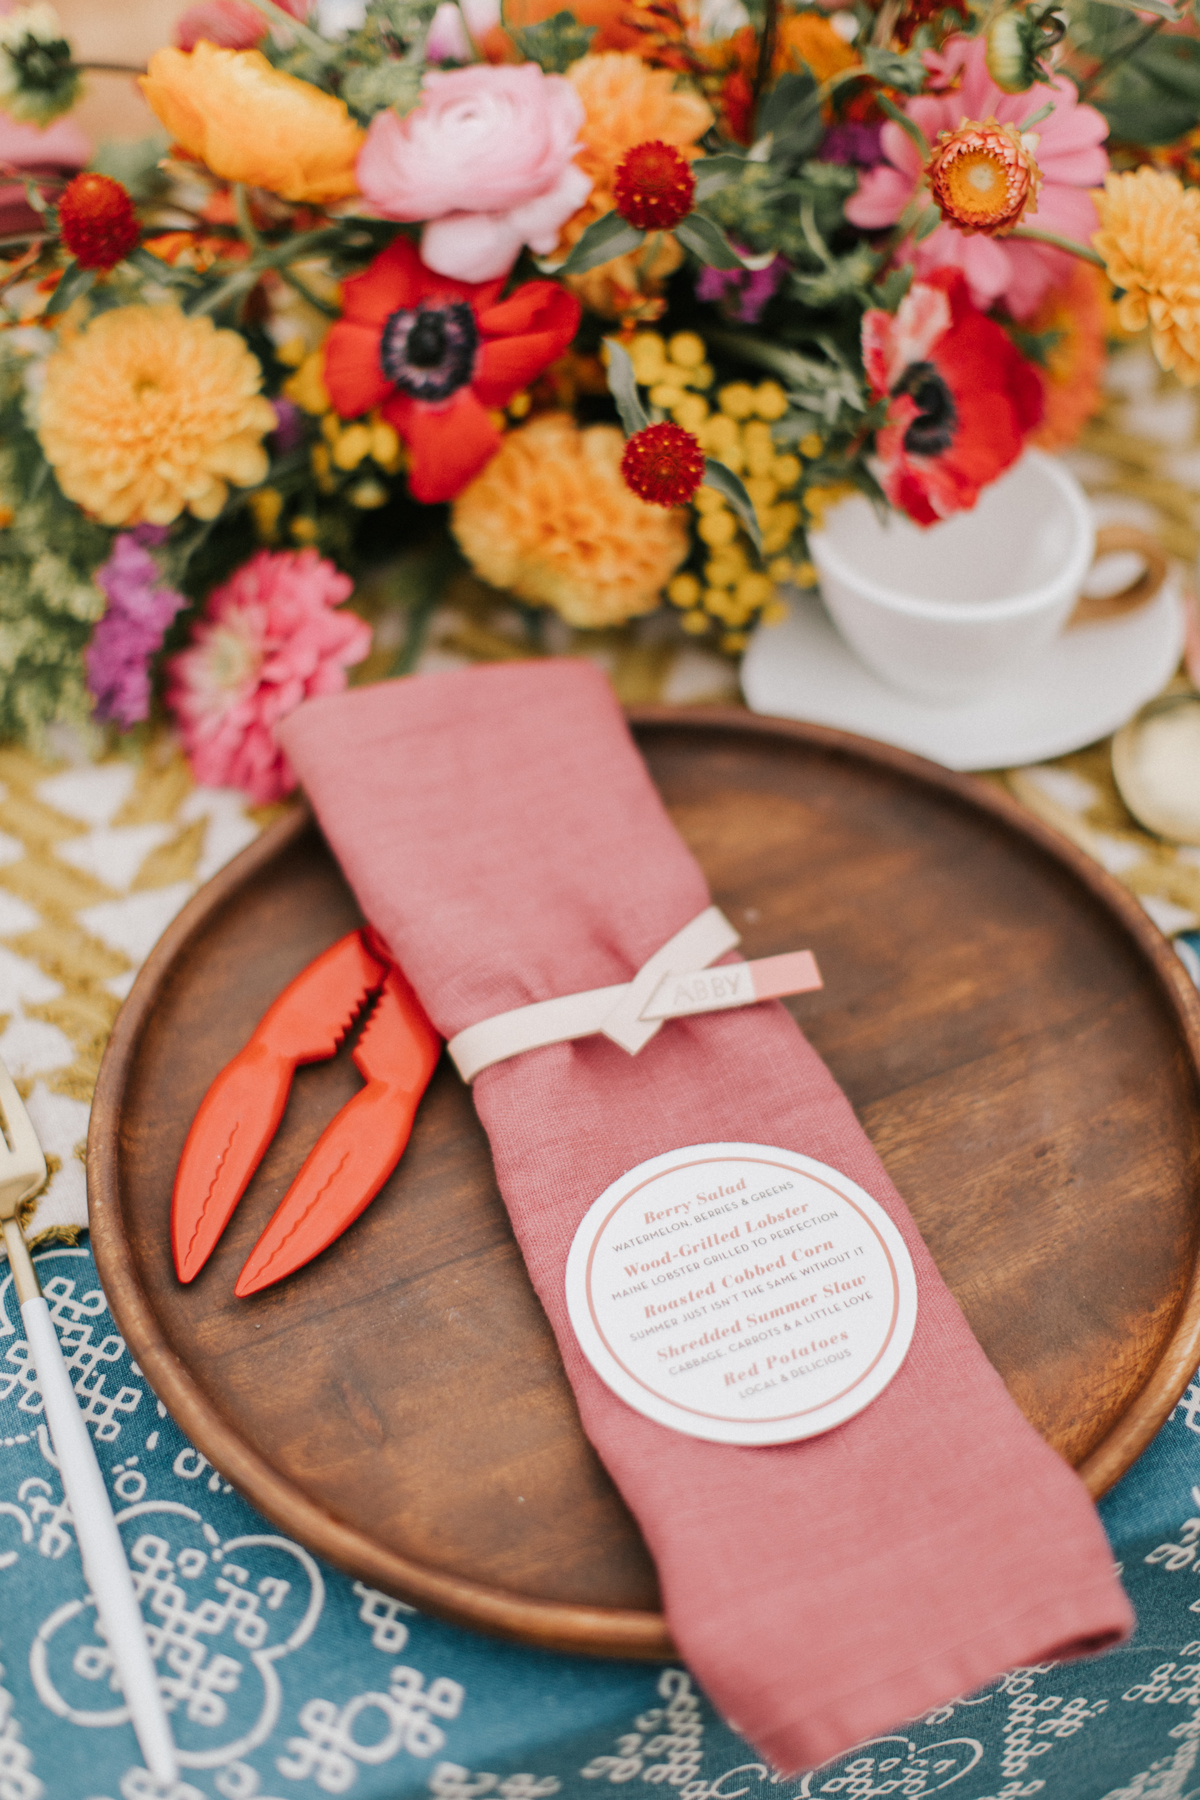 beach wedding ideas place setting with lobster claw shell cracker